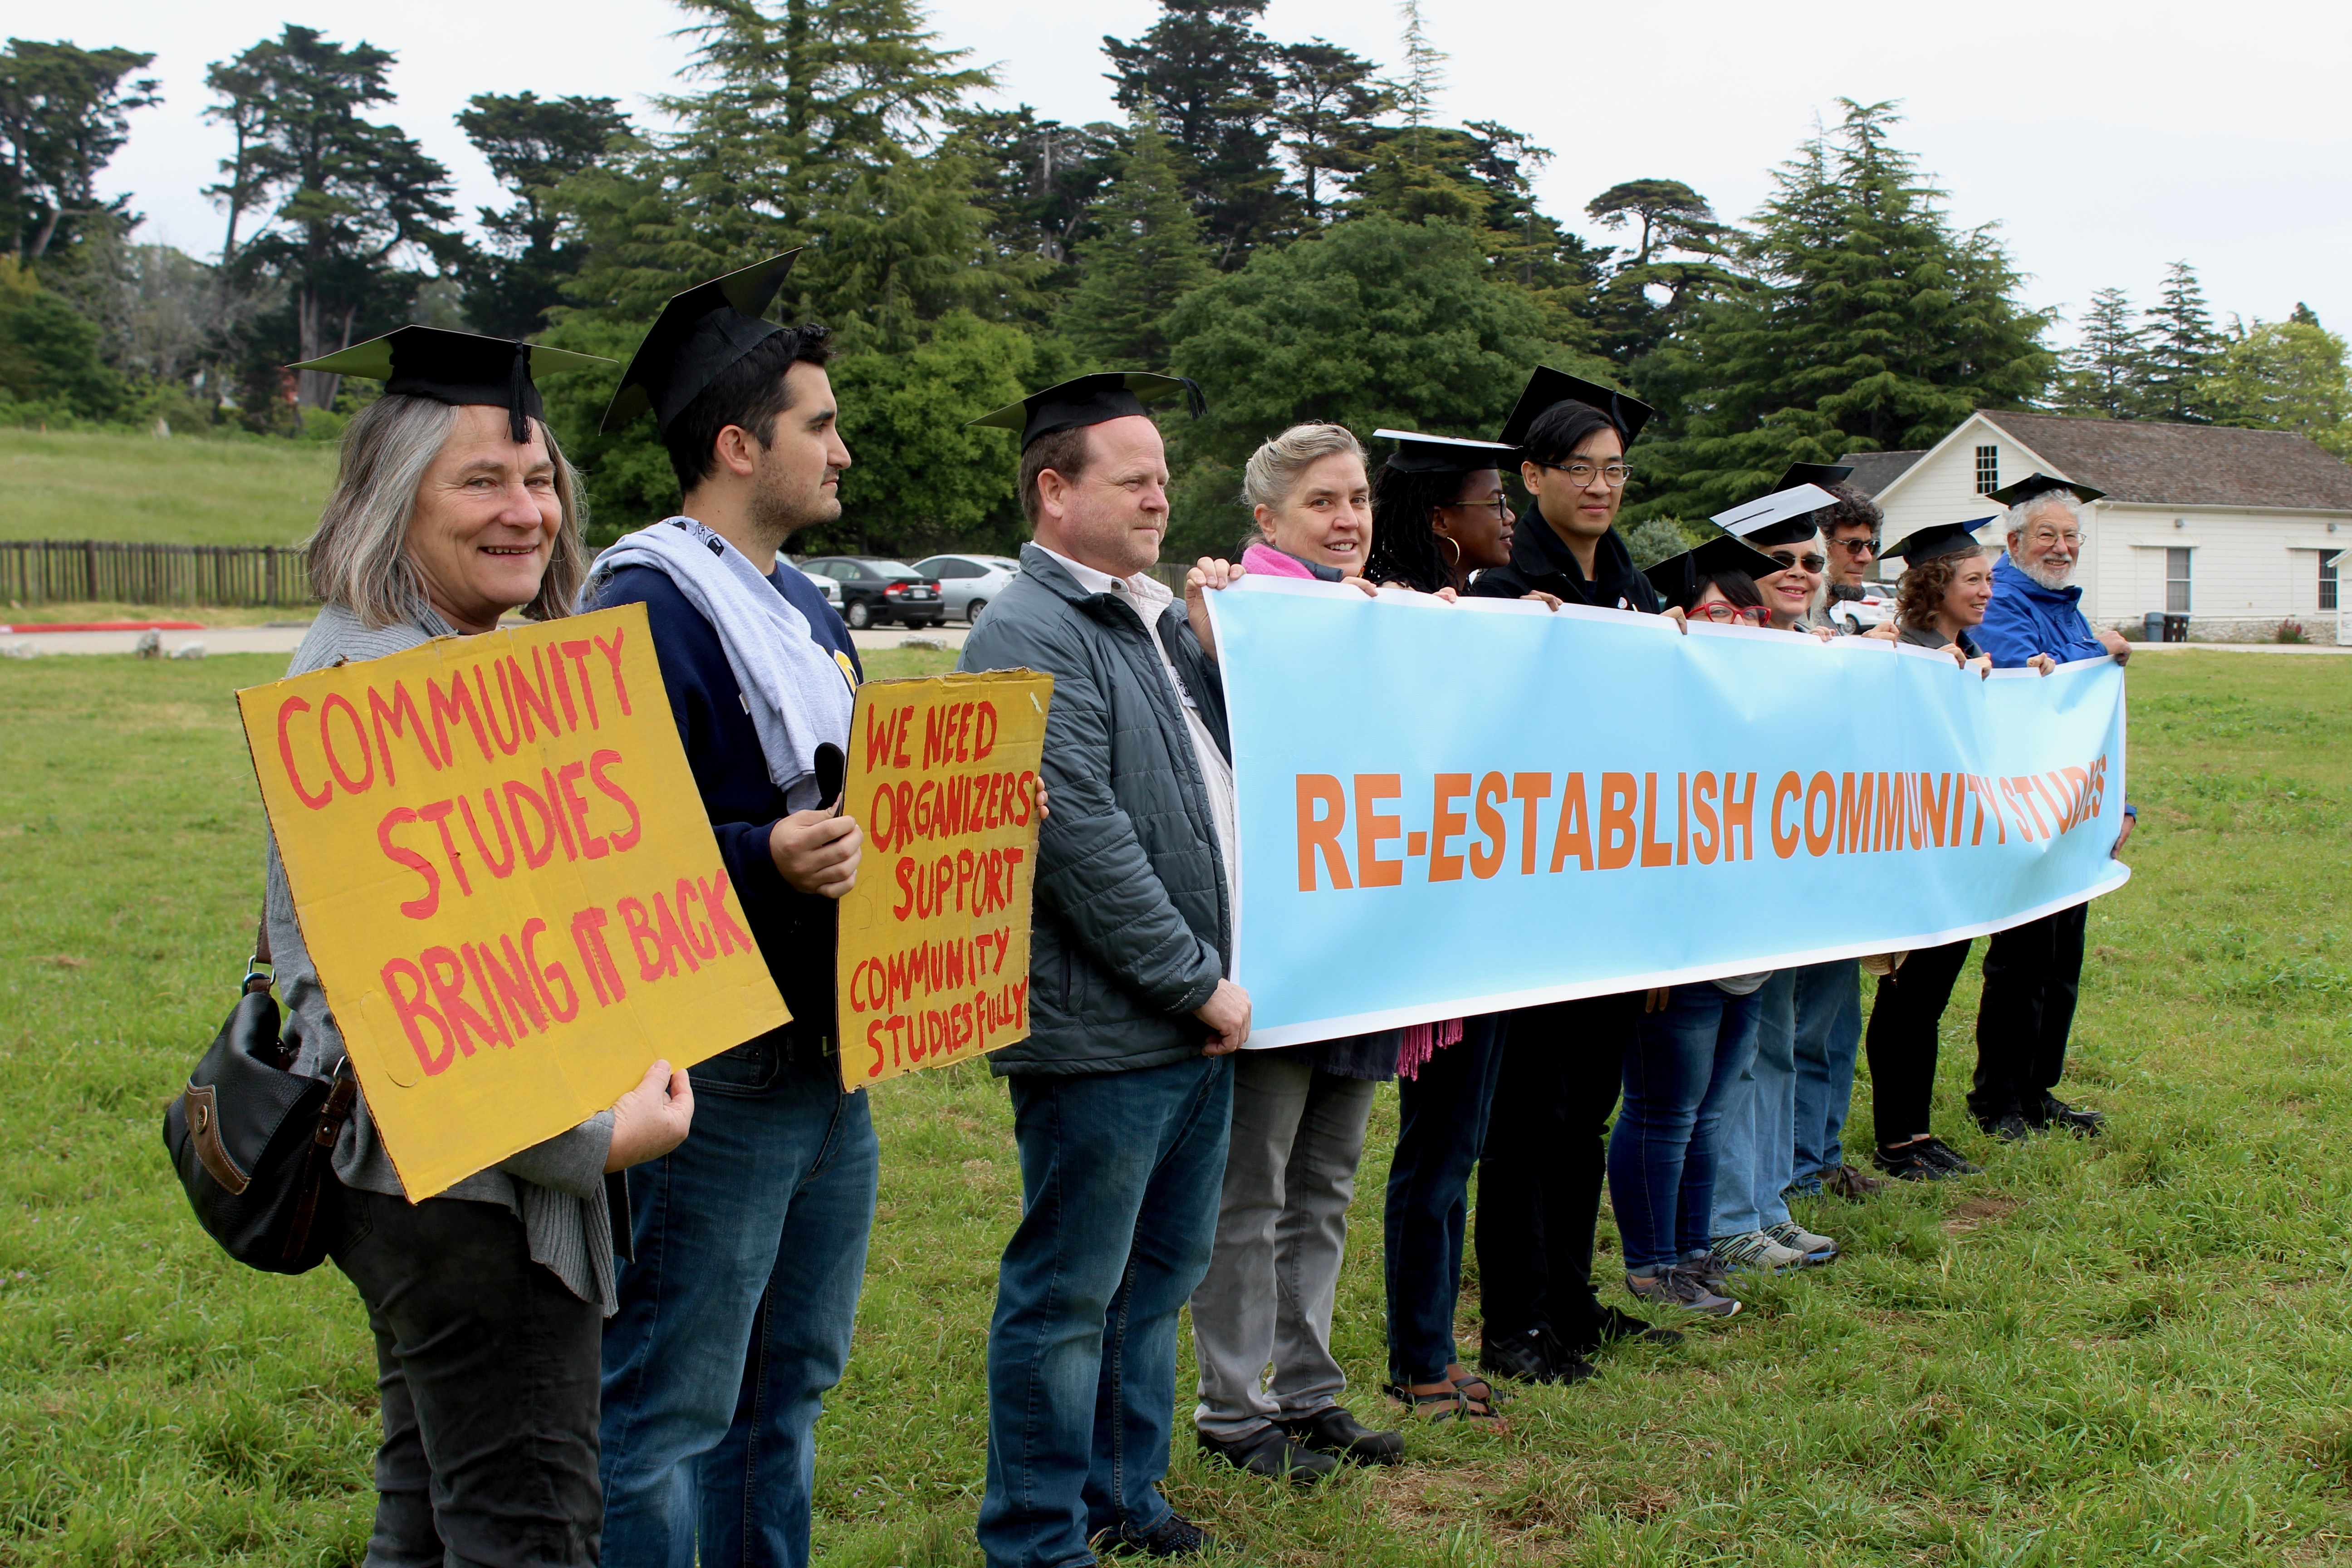 Community Studies Program Protests for Recognition